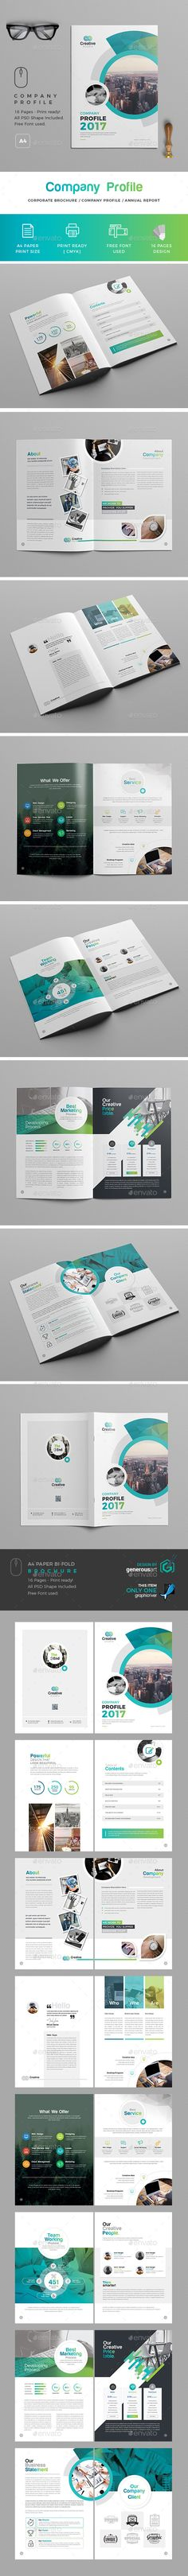 Company  Profile Template - Brochures Print Templates Download here : https://graphicriver.net/item/company-profile-template/20147331?s_rank=121&ref=Al-fatih